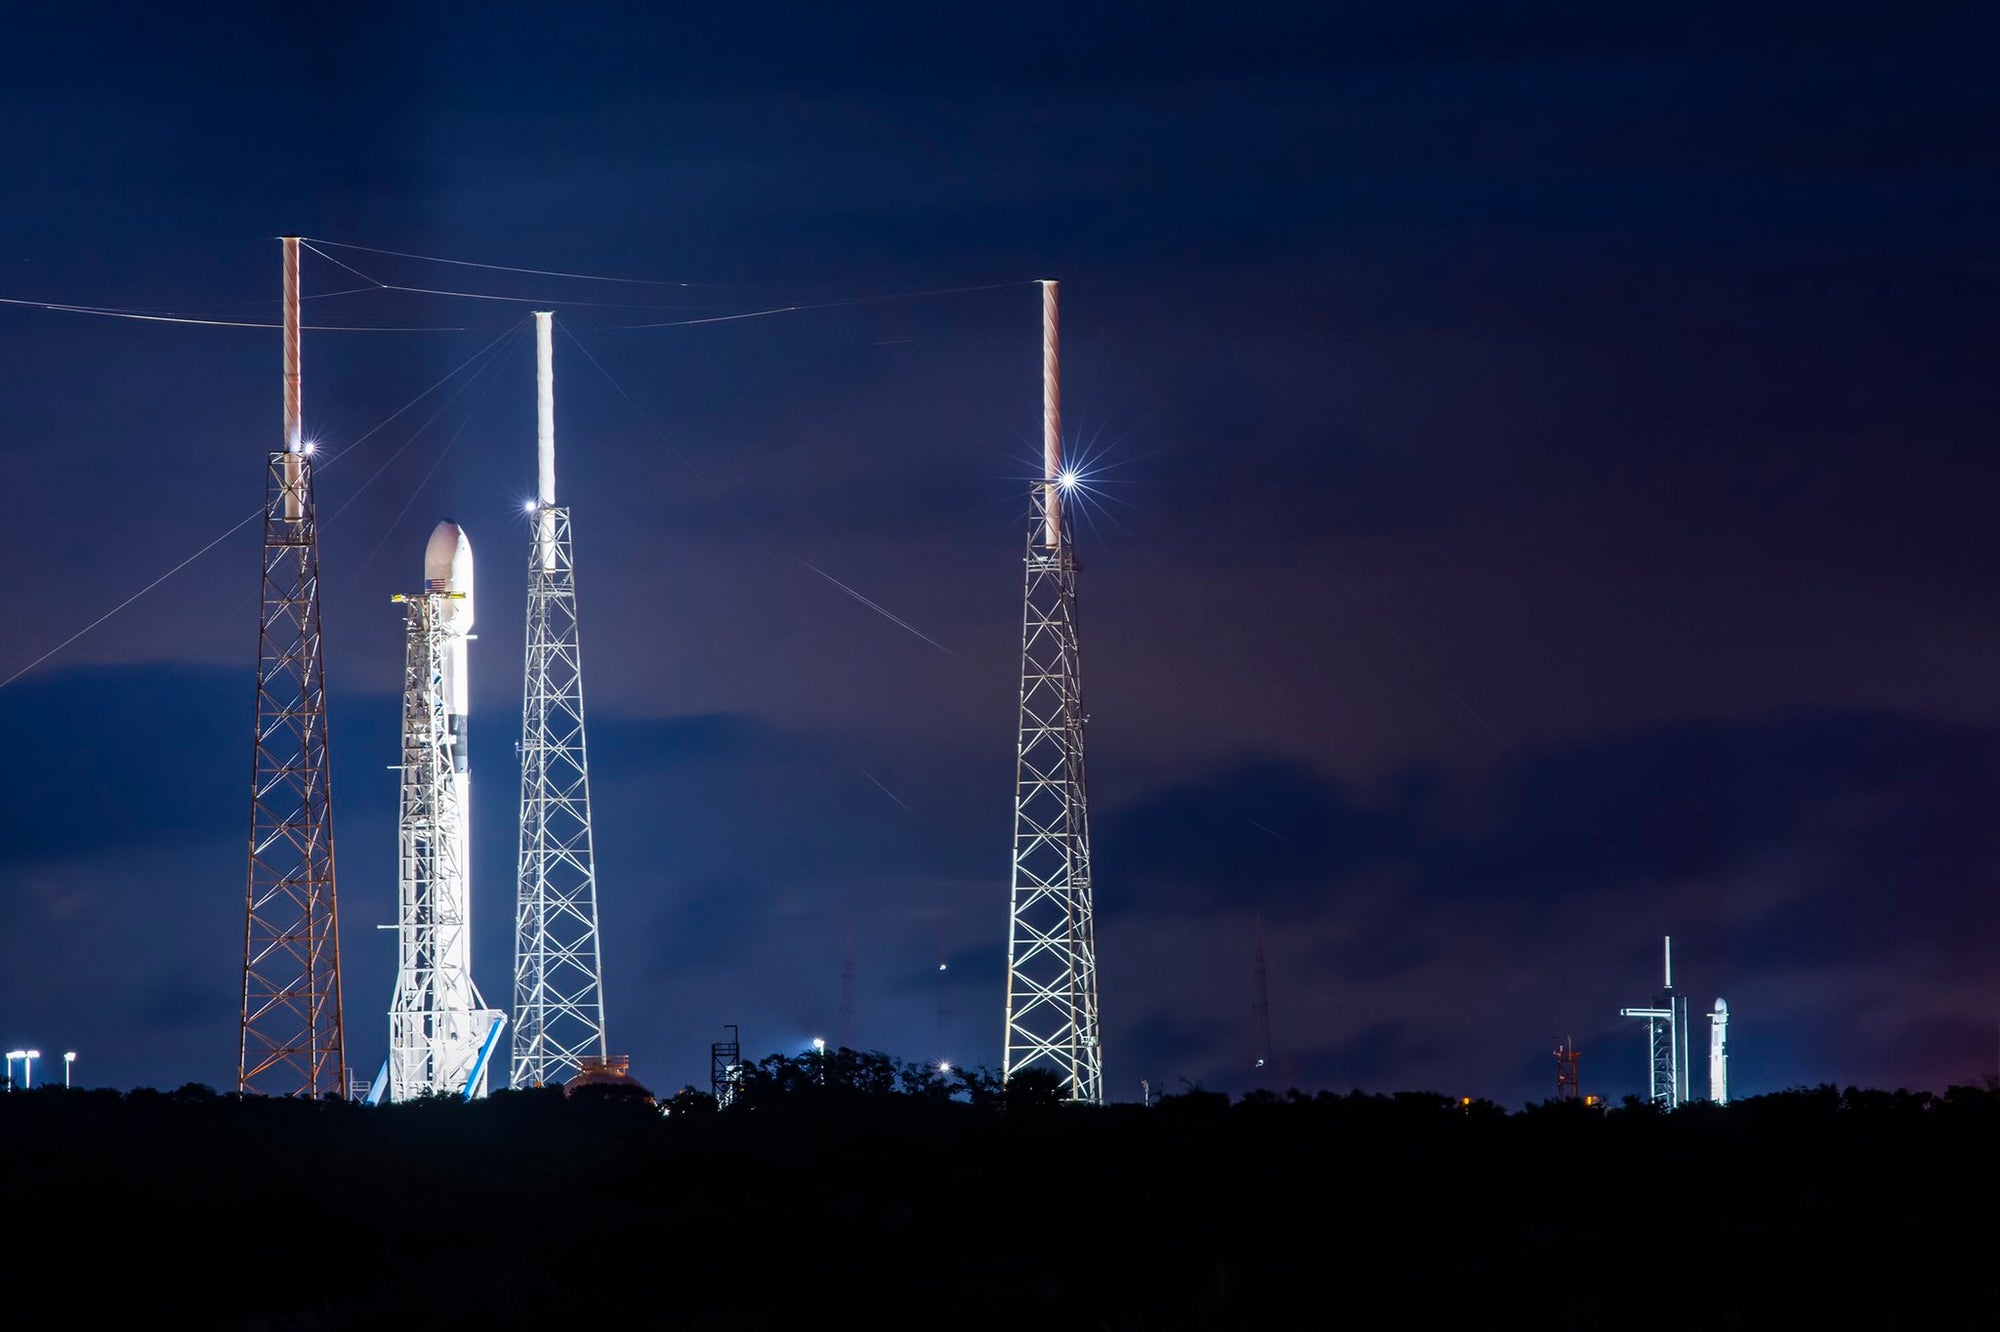 SpaceX will conduct back-to-back Falcon 9 launches this week